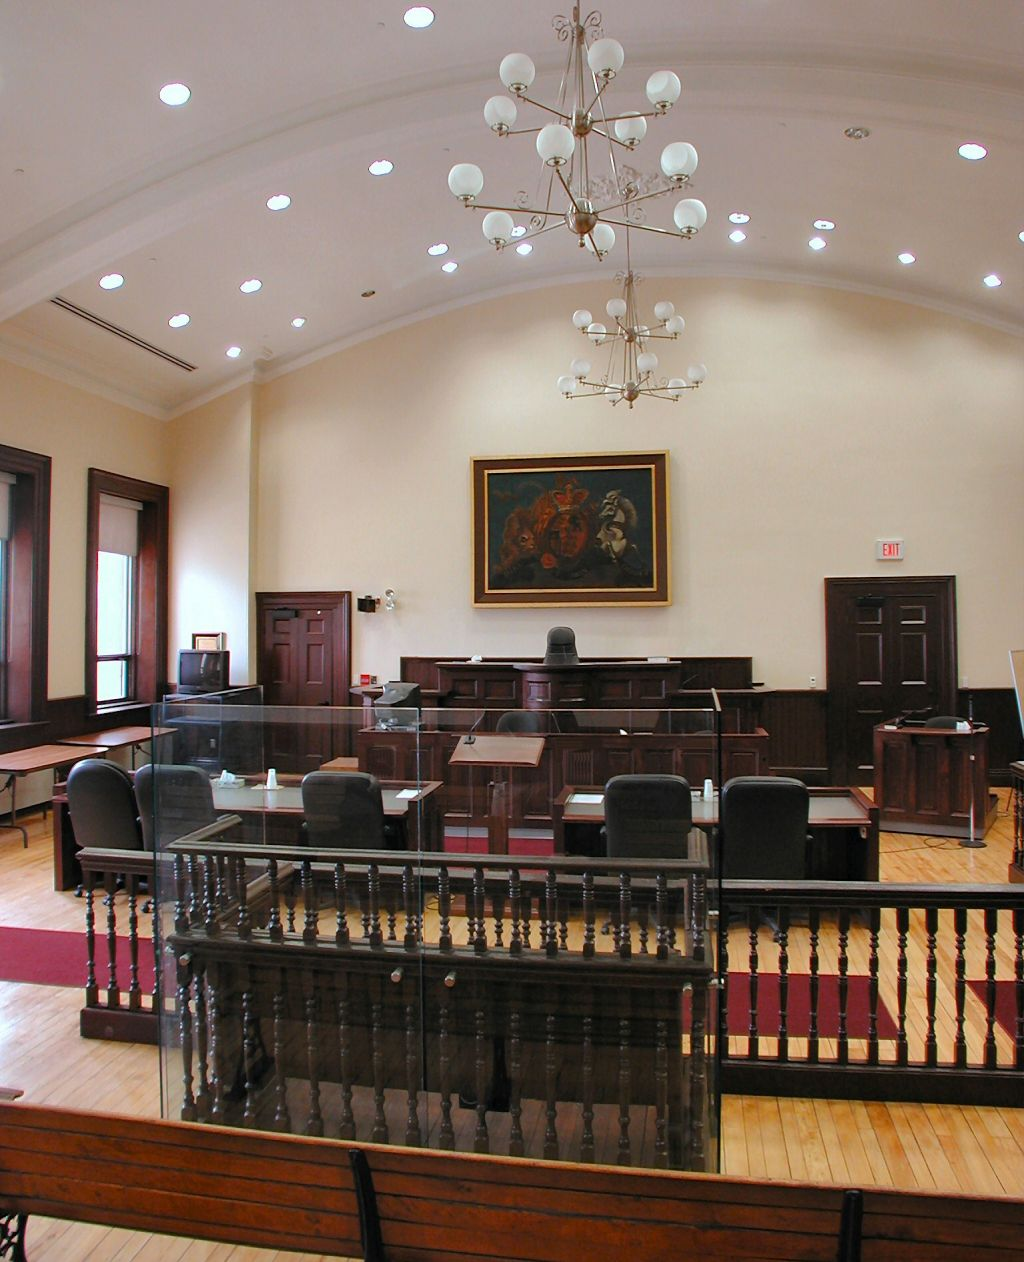 court visit report essay Report of a court visit essay sample introduction i will briefly describe role and function of the federal, state court system and including community justice centres and including legal aid.